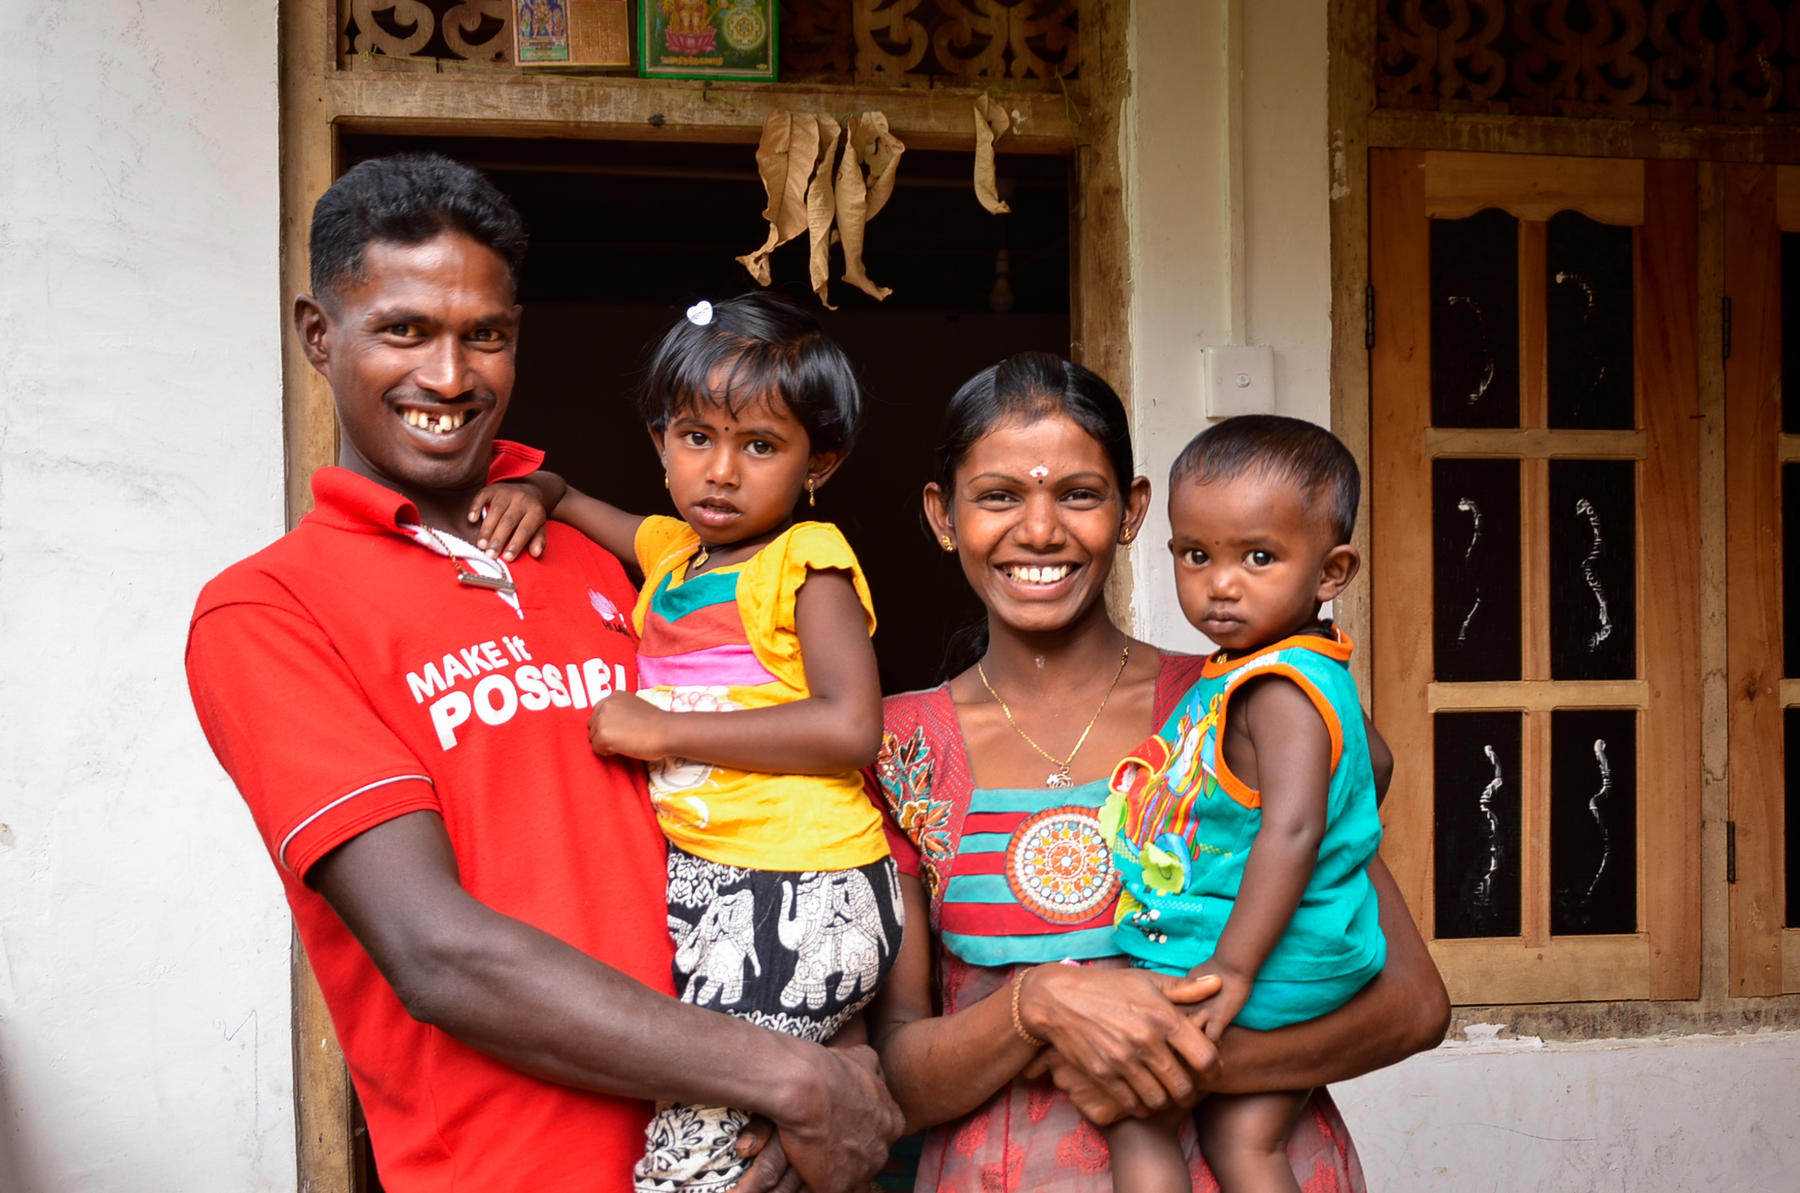 A sri lankan family smiles in front of their home